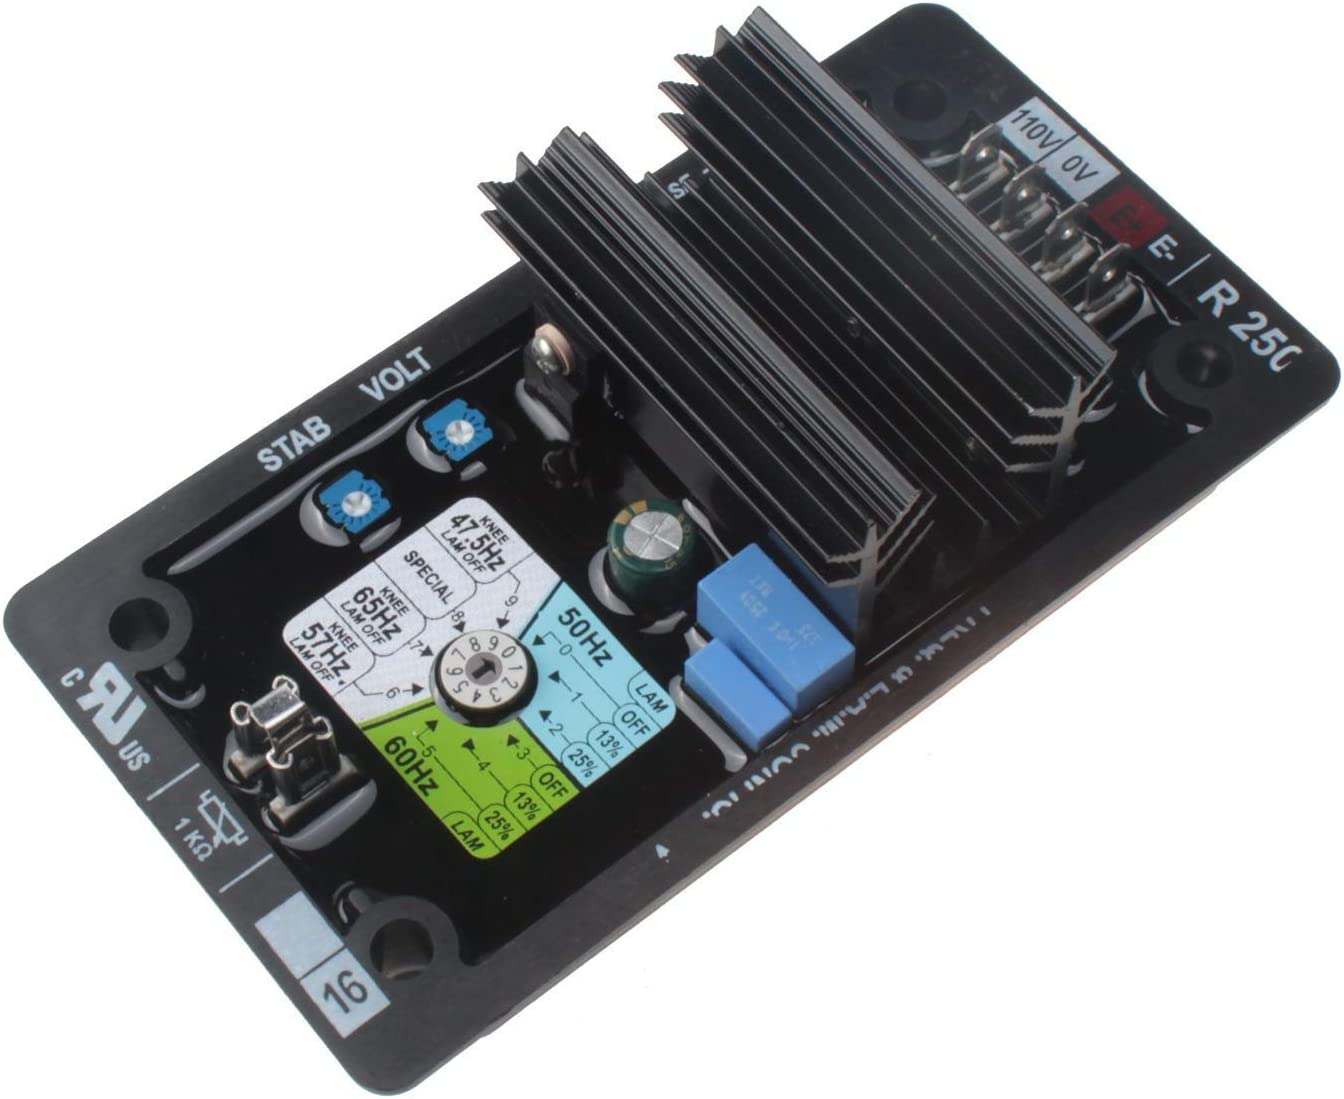 Friday Part AVR R250 Automatic Voltage Regulator Electronics Module with 1 Year Warranty